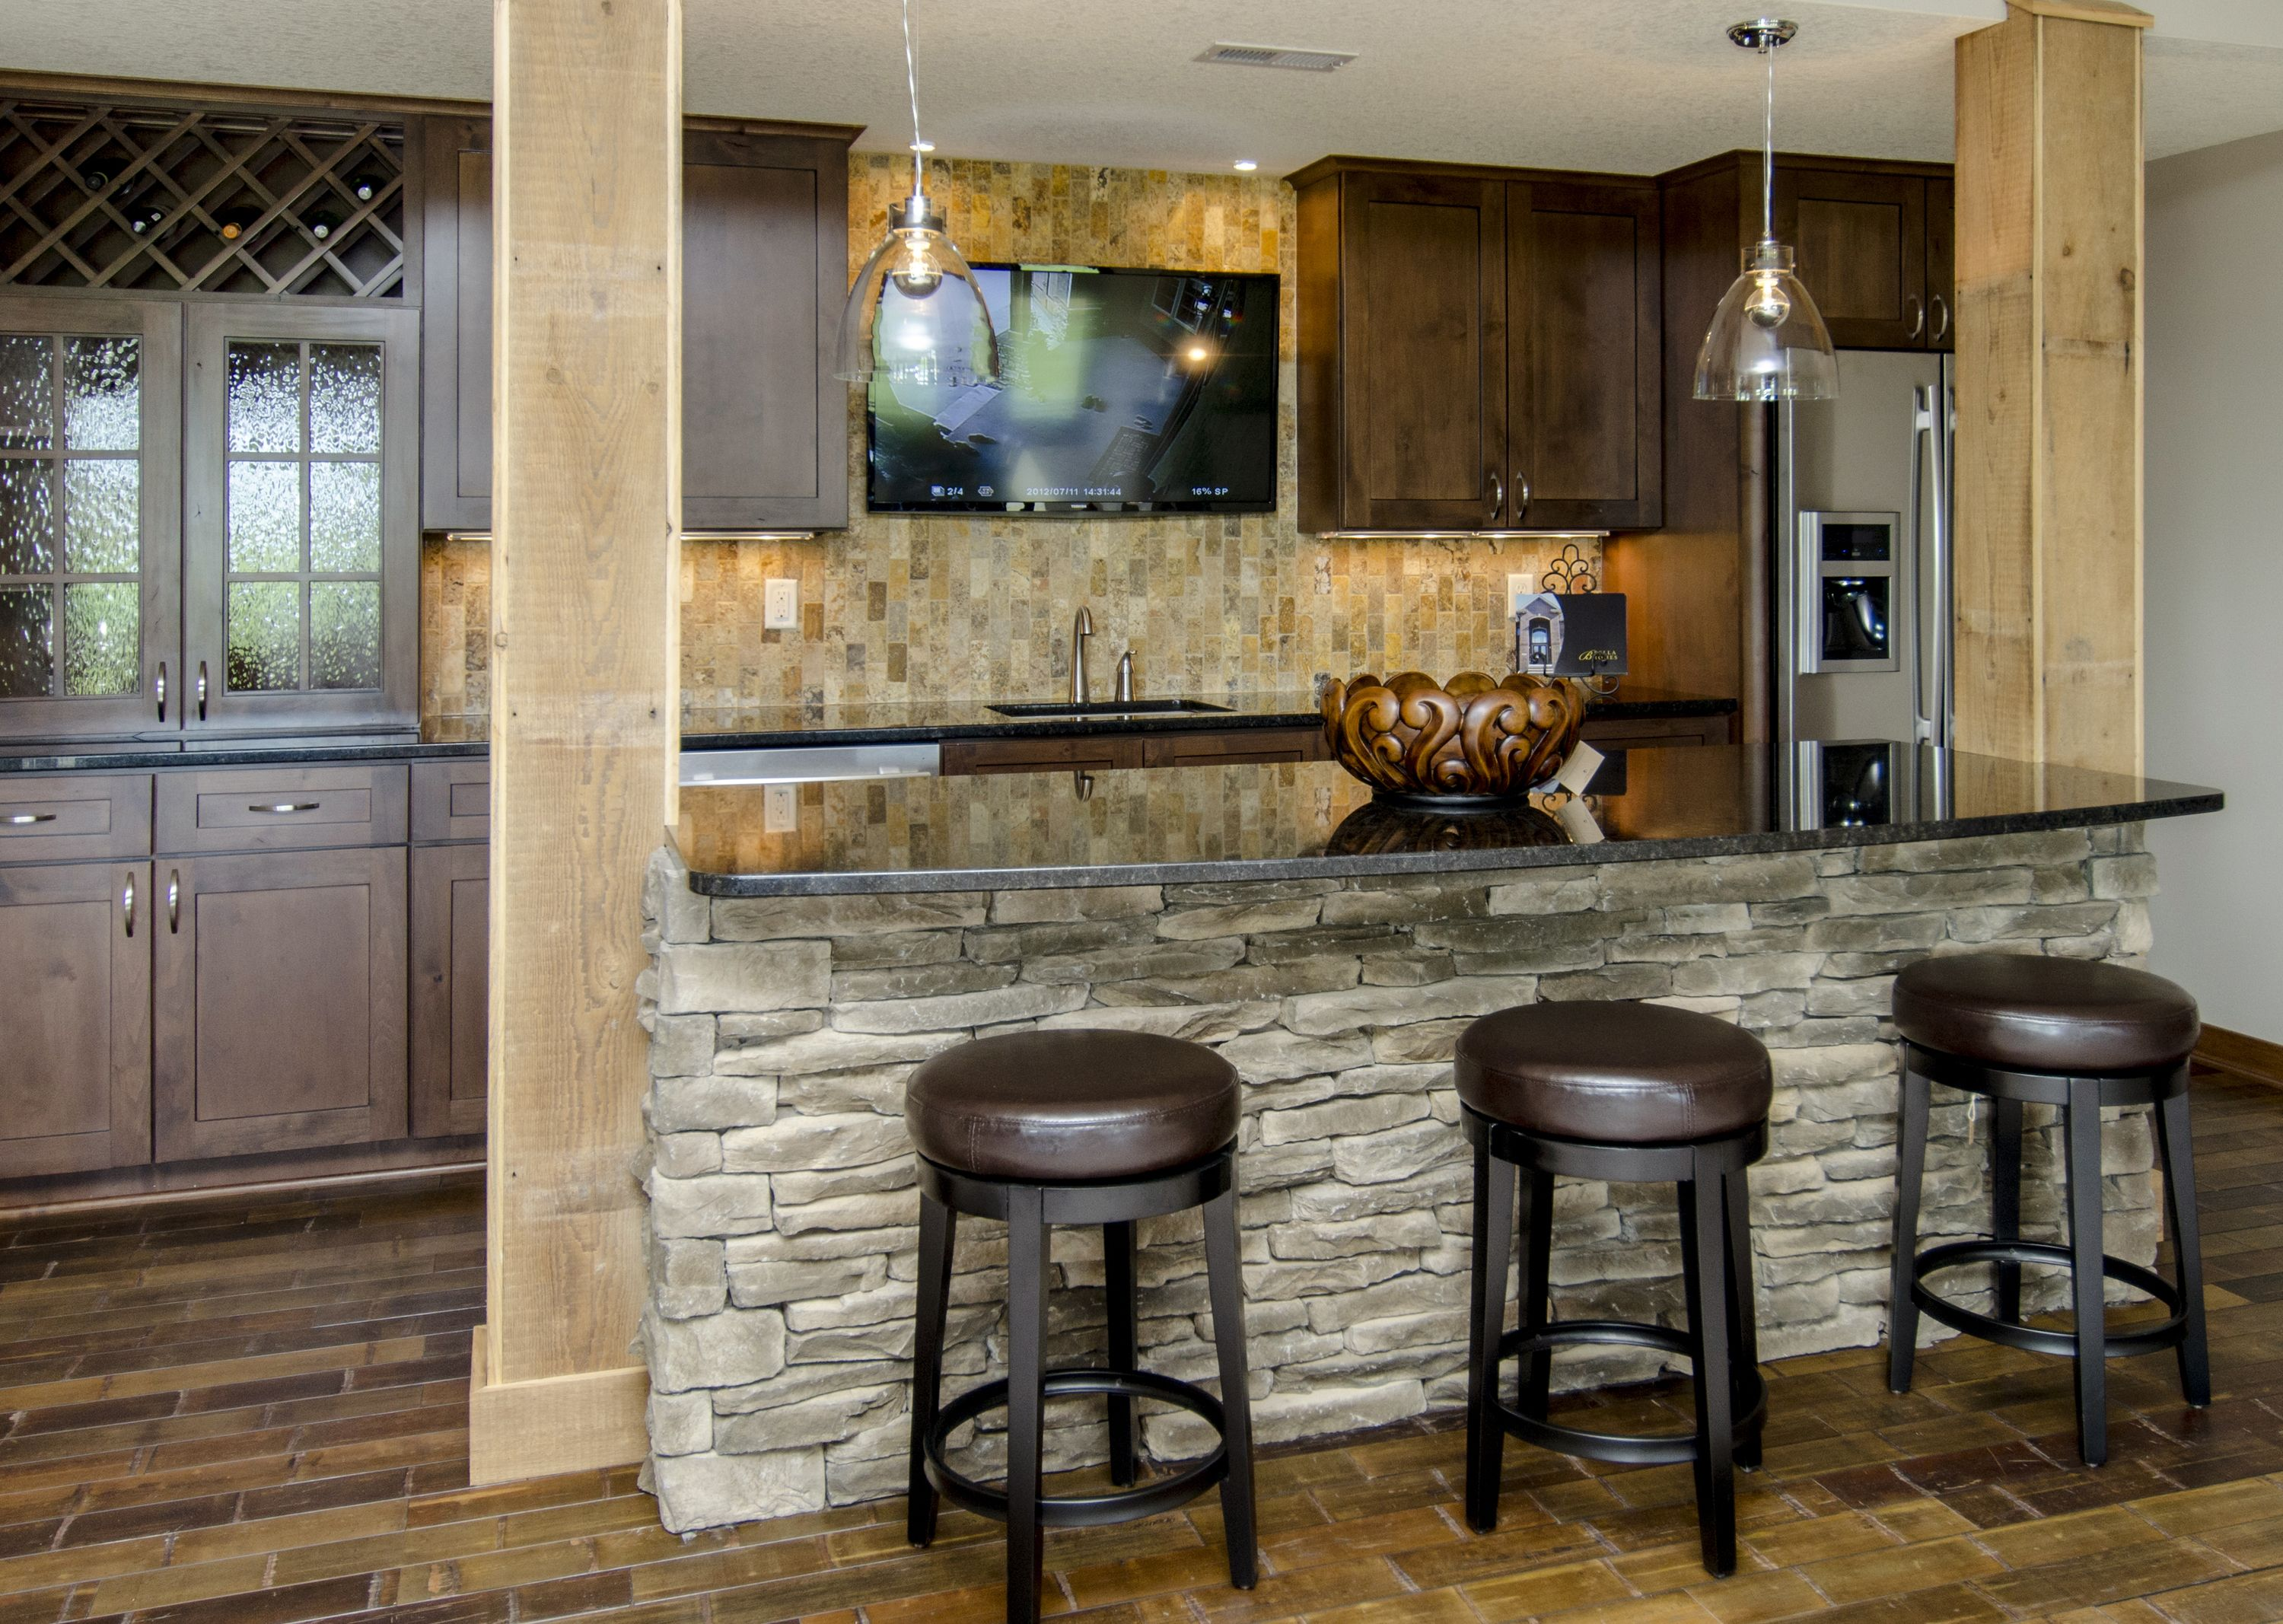 Bar Backsplash Ideas stone on bar front, wine holder, travertine backsplash, tv above